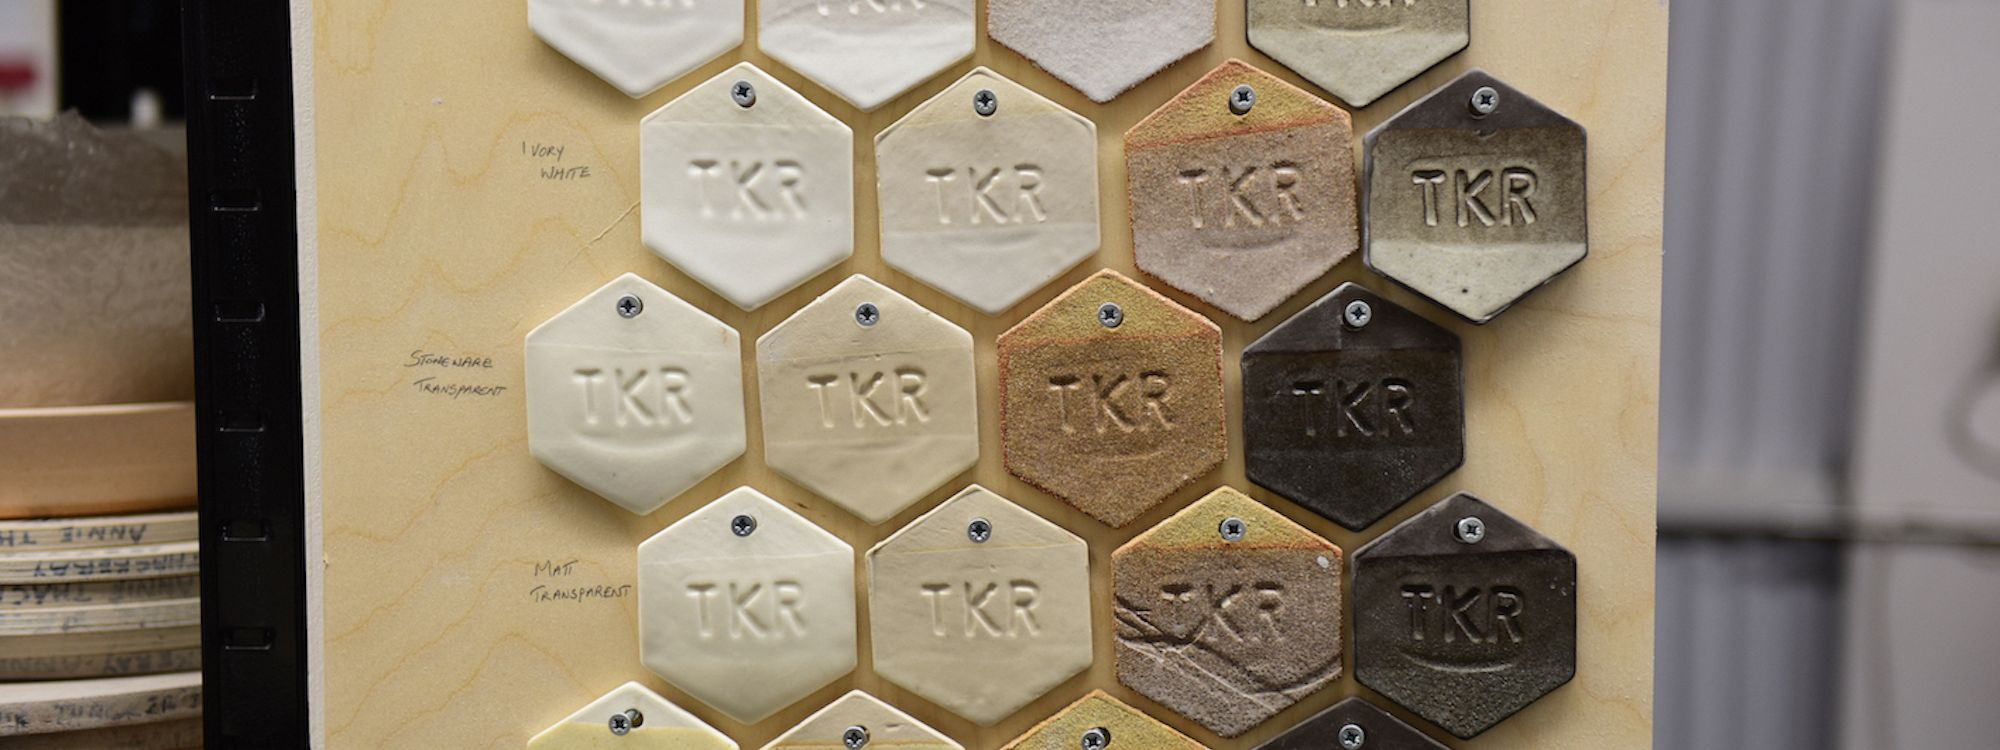 Test tiles at The Kiln Rooms. Photo courtesy The Kiln Rooms, London